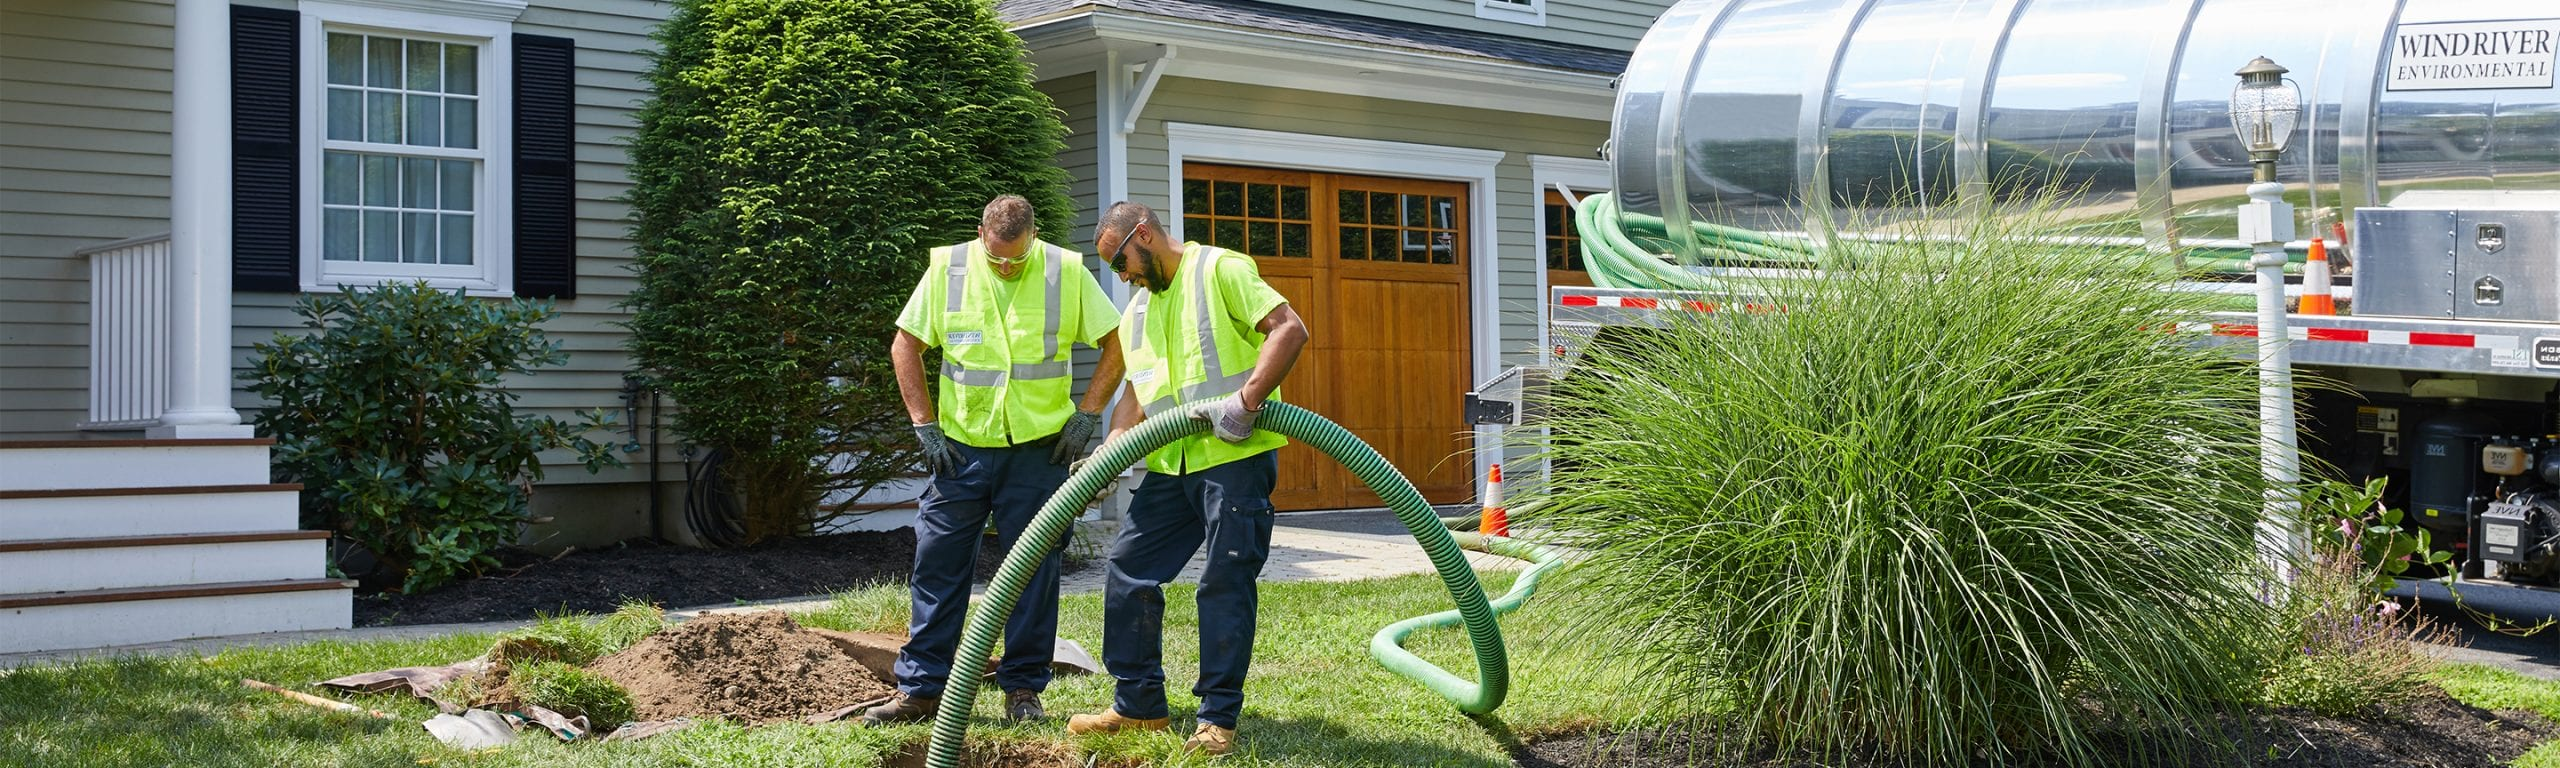 Residential Septic, Drain & Inspection Services